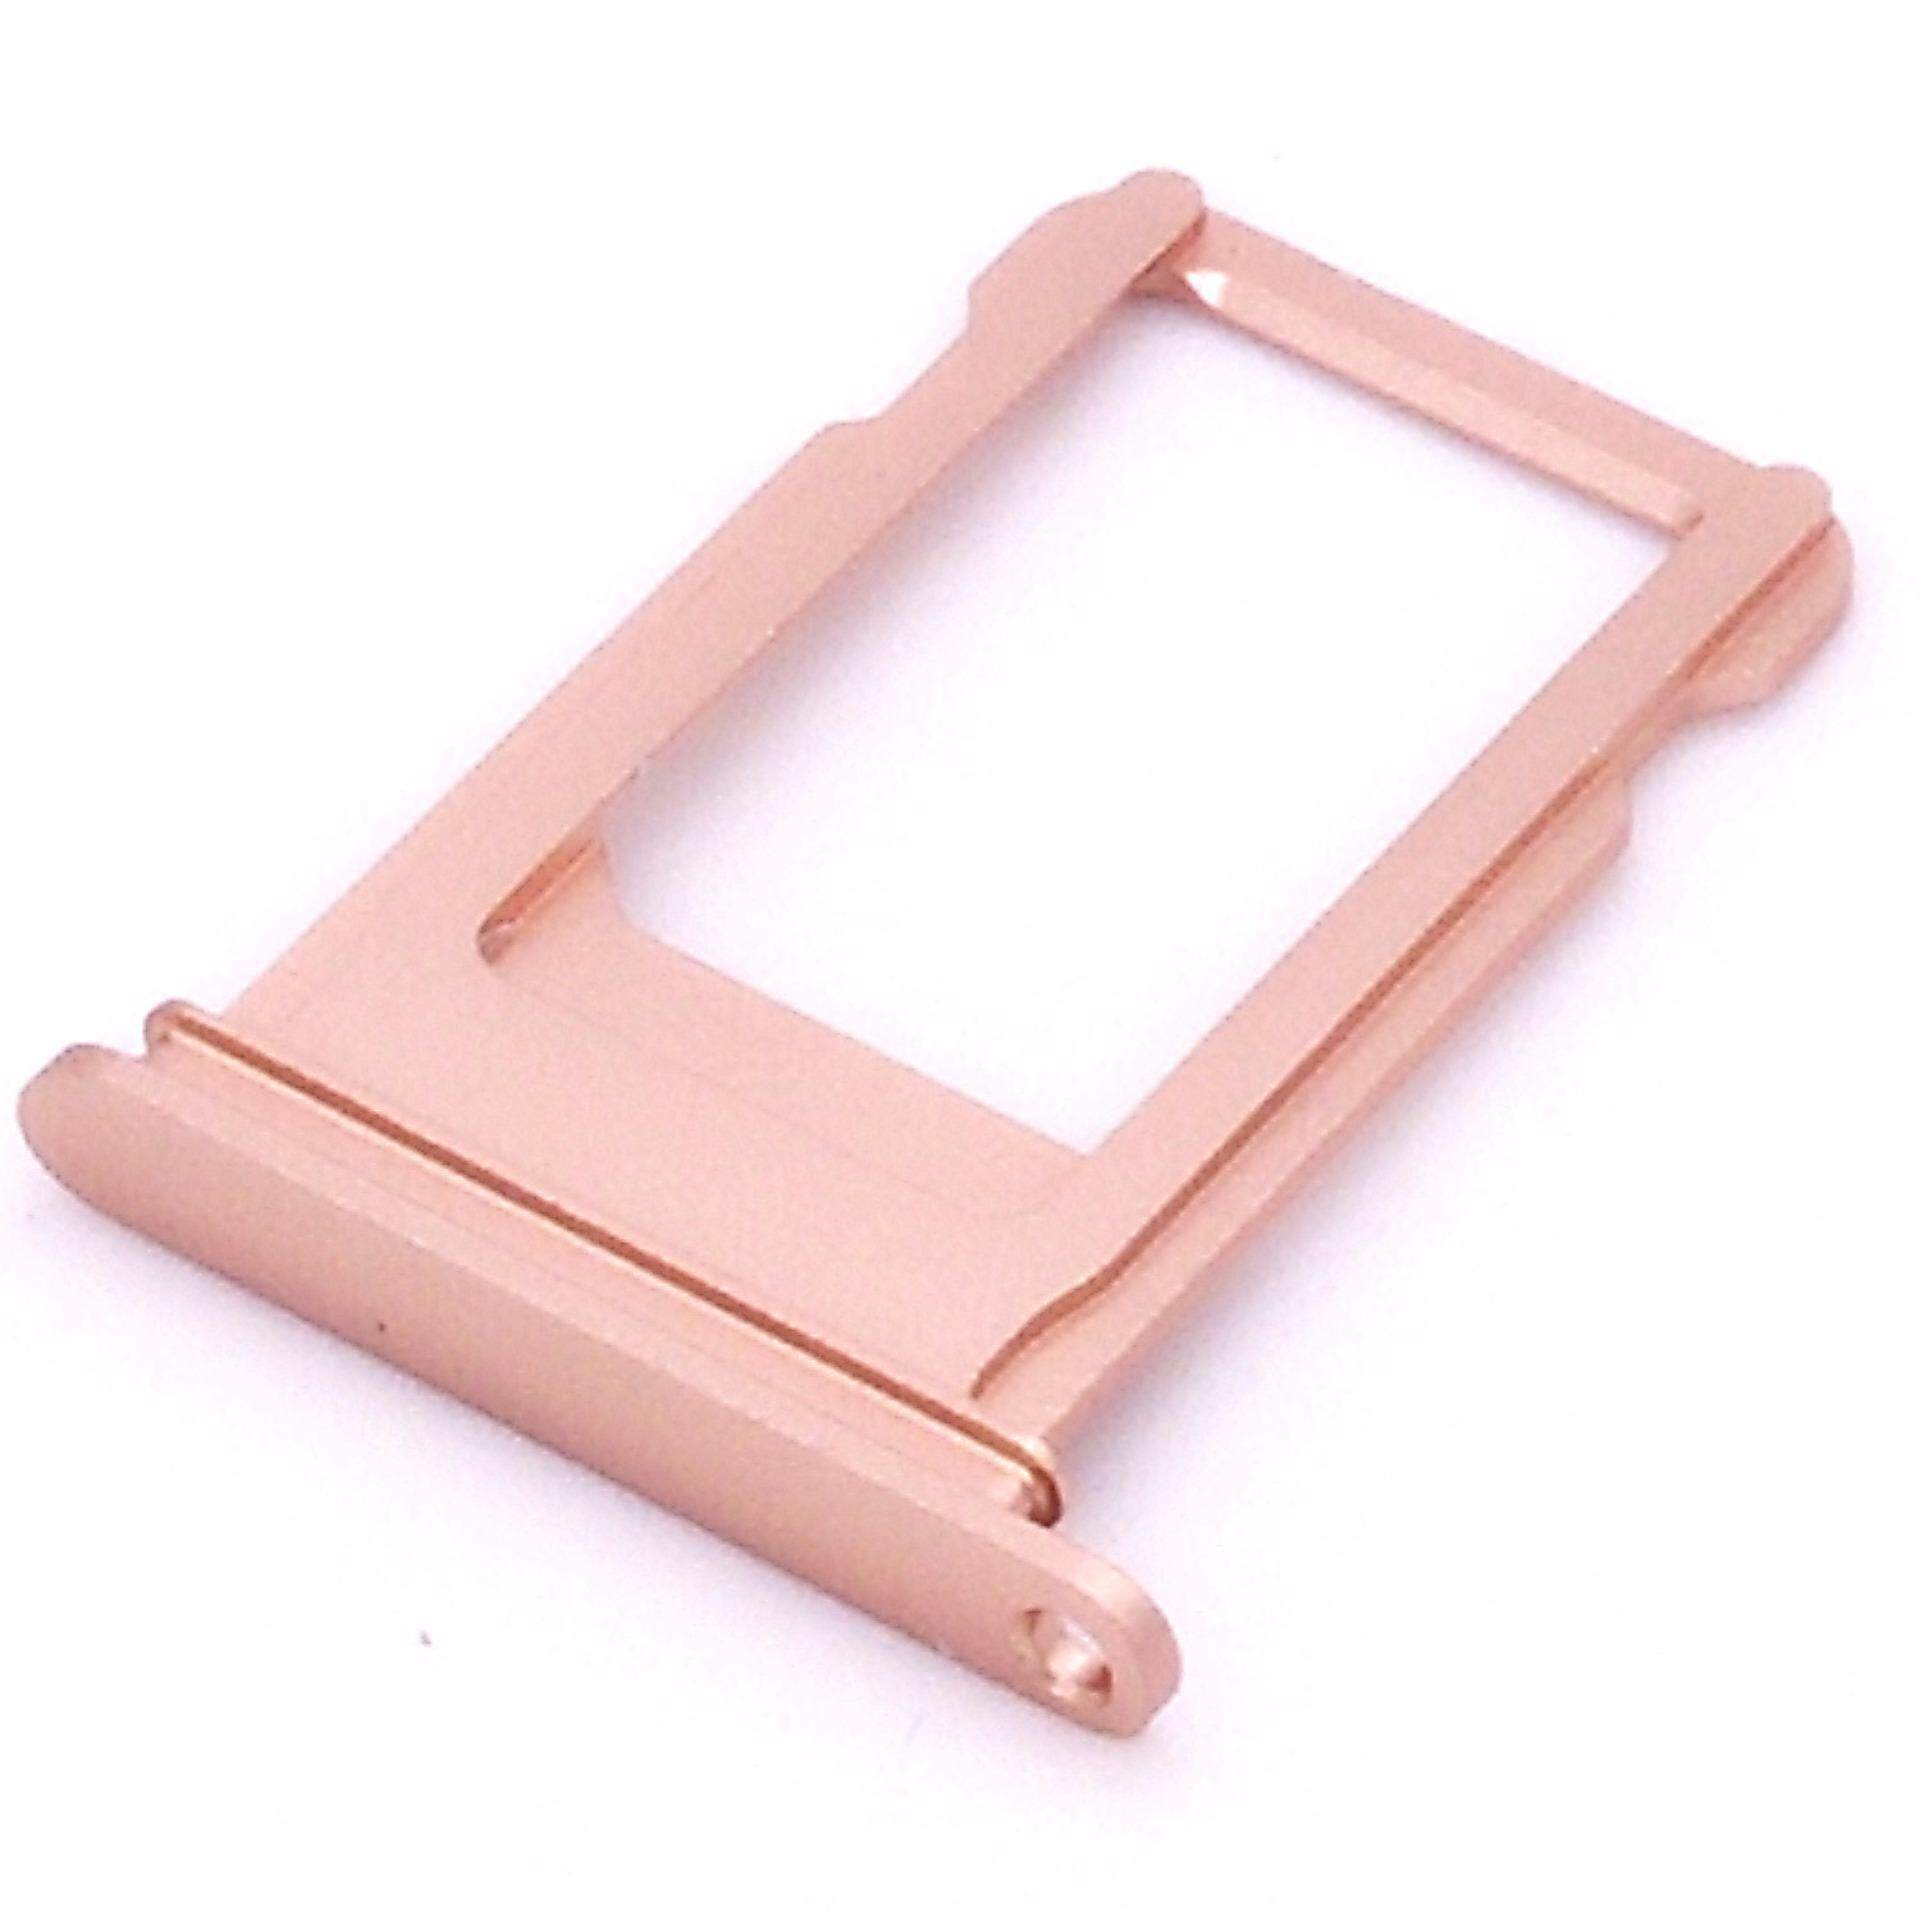 SIM Card Tray Slot Holder Repalcement for Apple iPhone 7 Plus